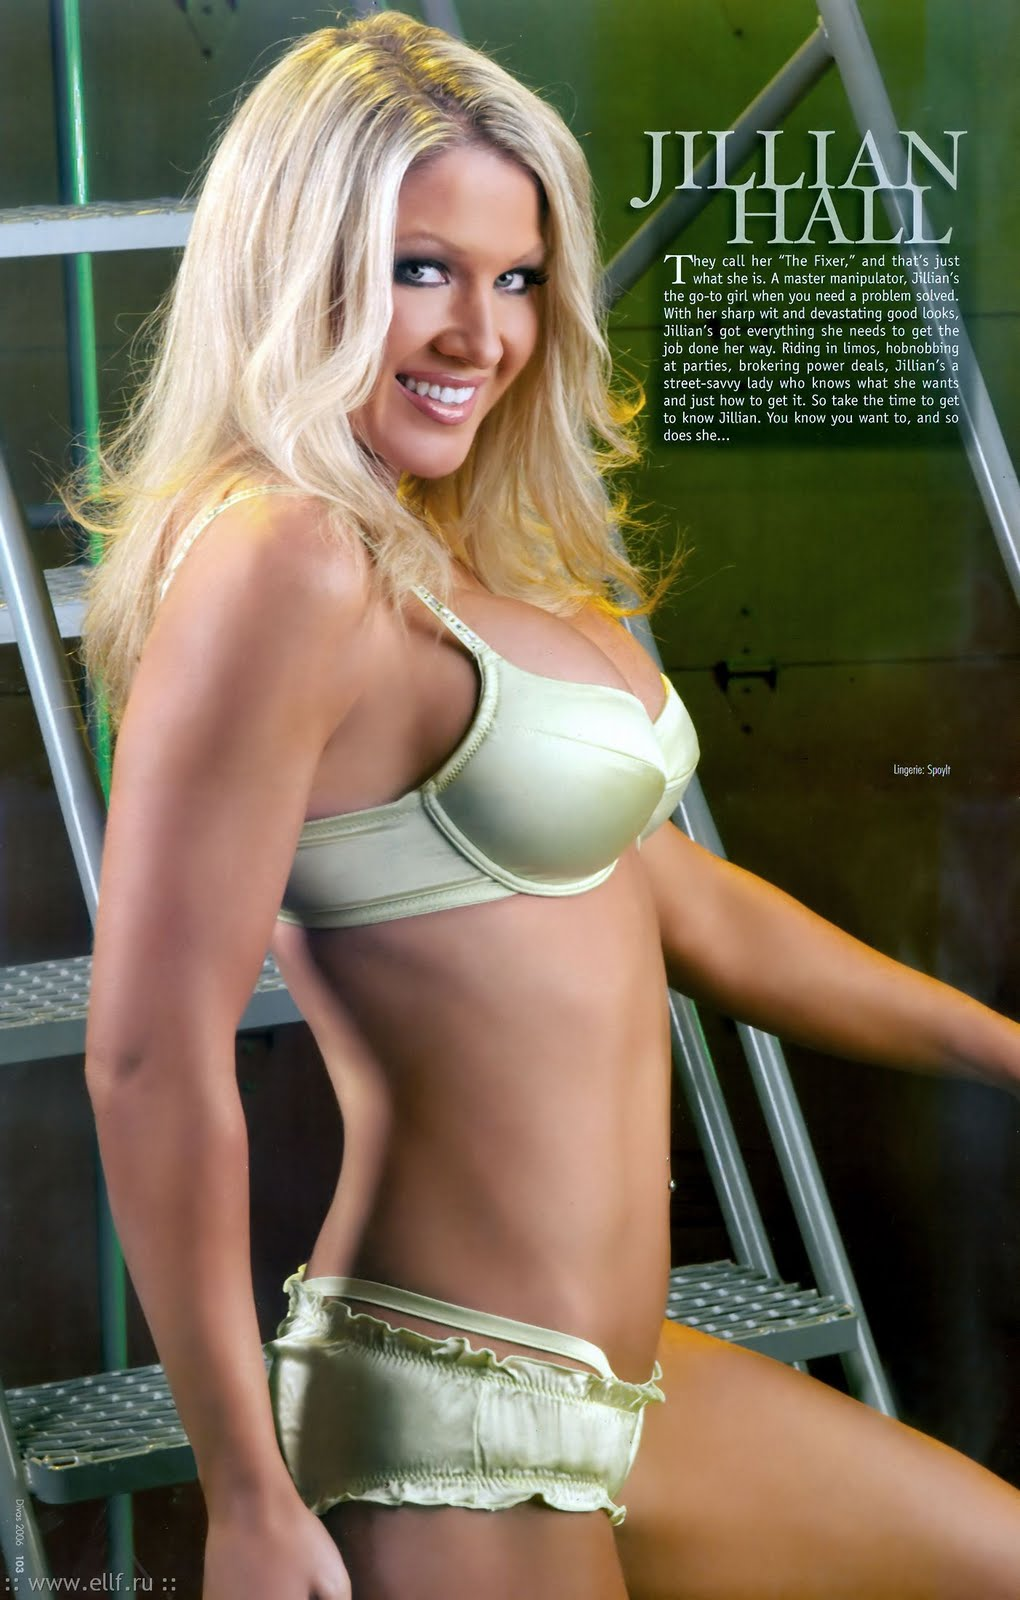 Something Jillian hall bikini seems